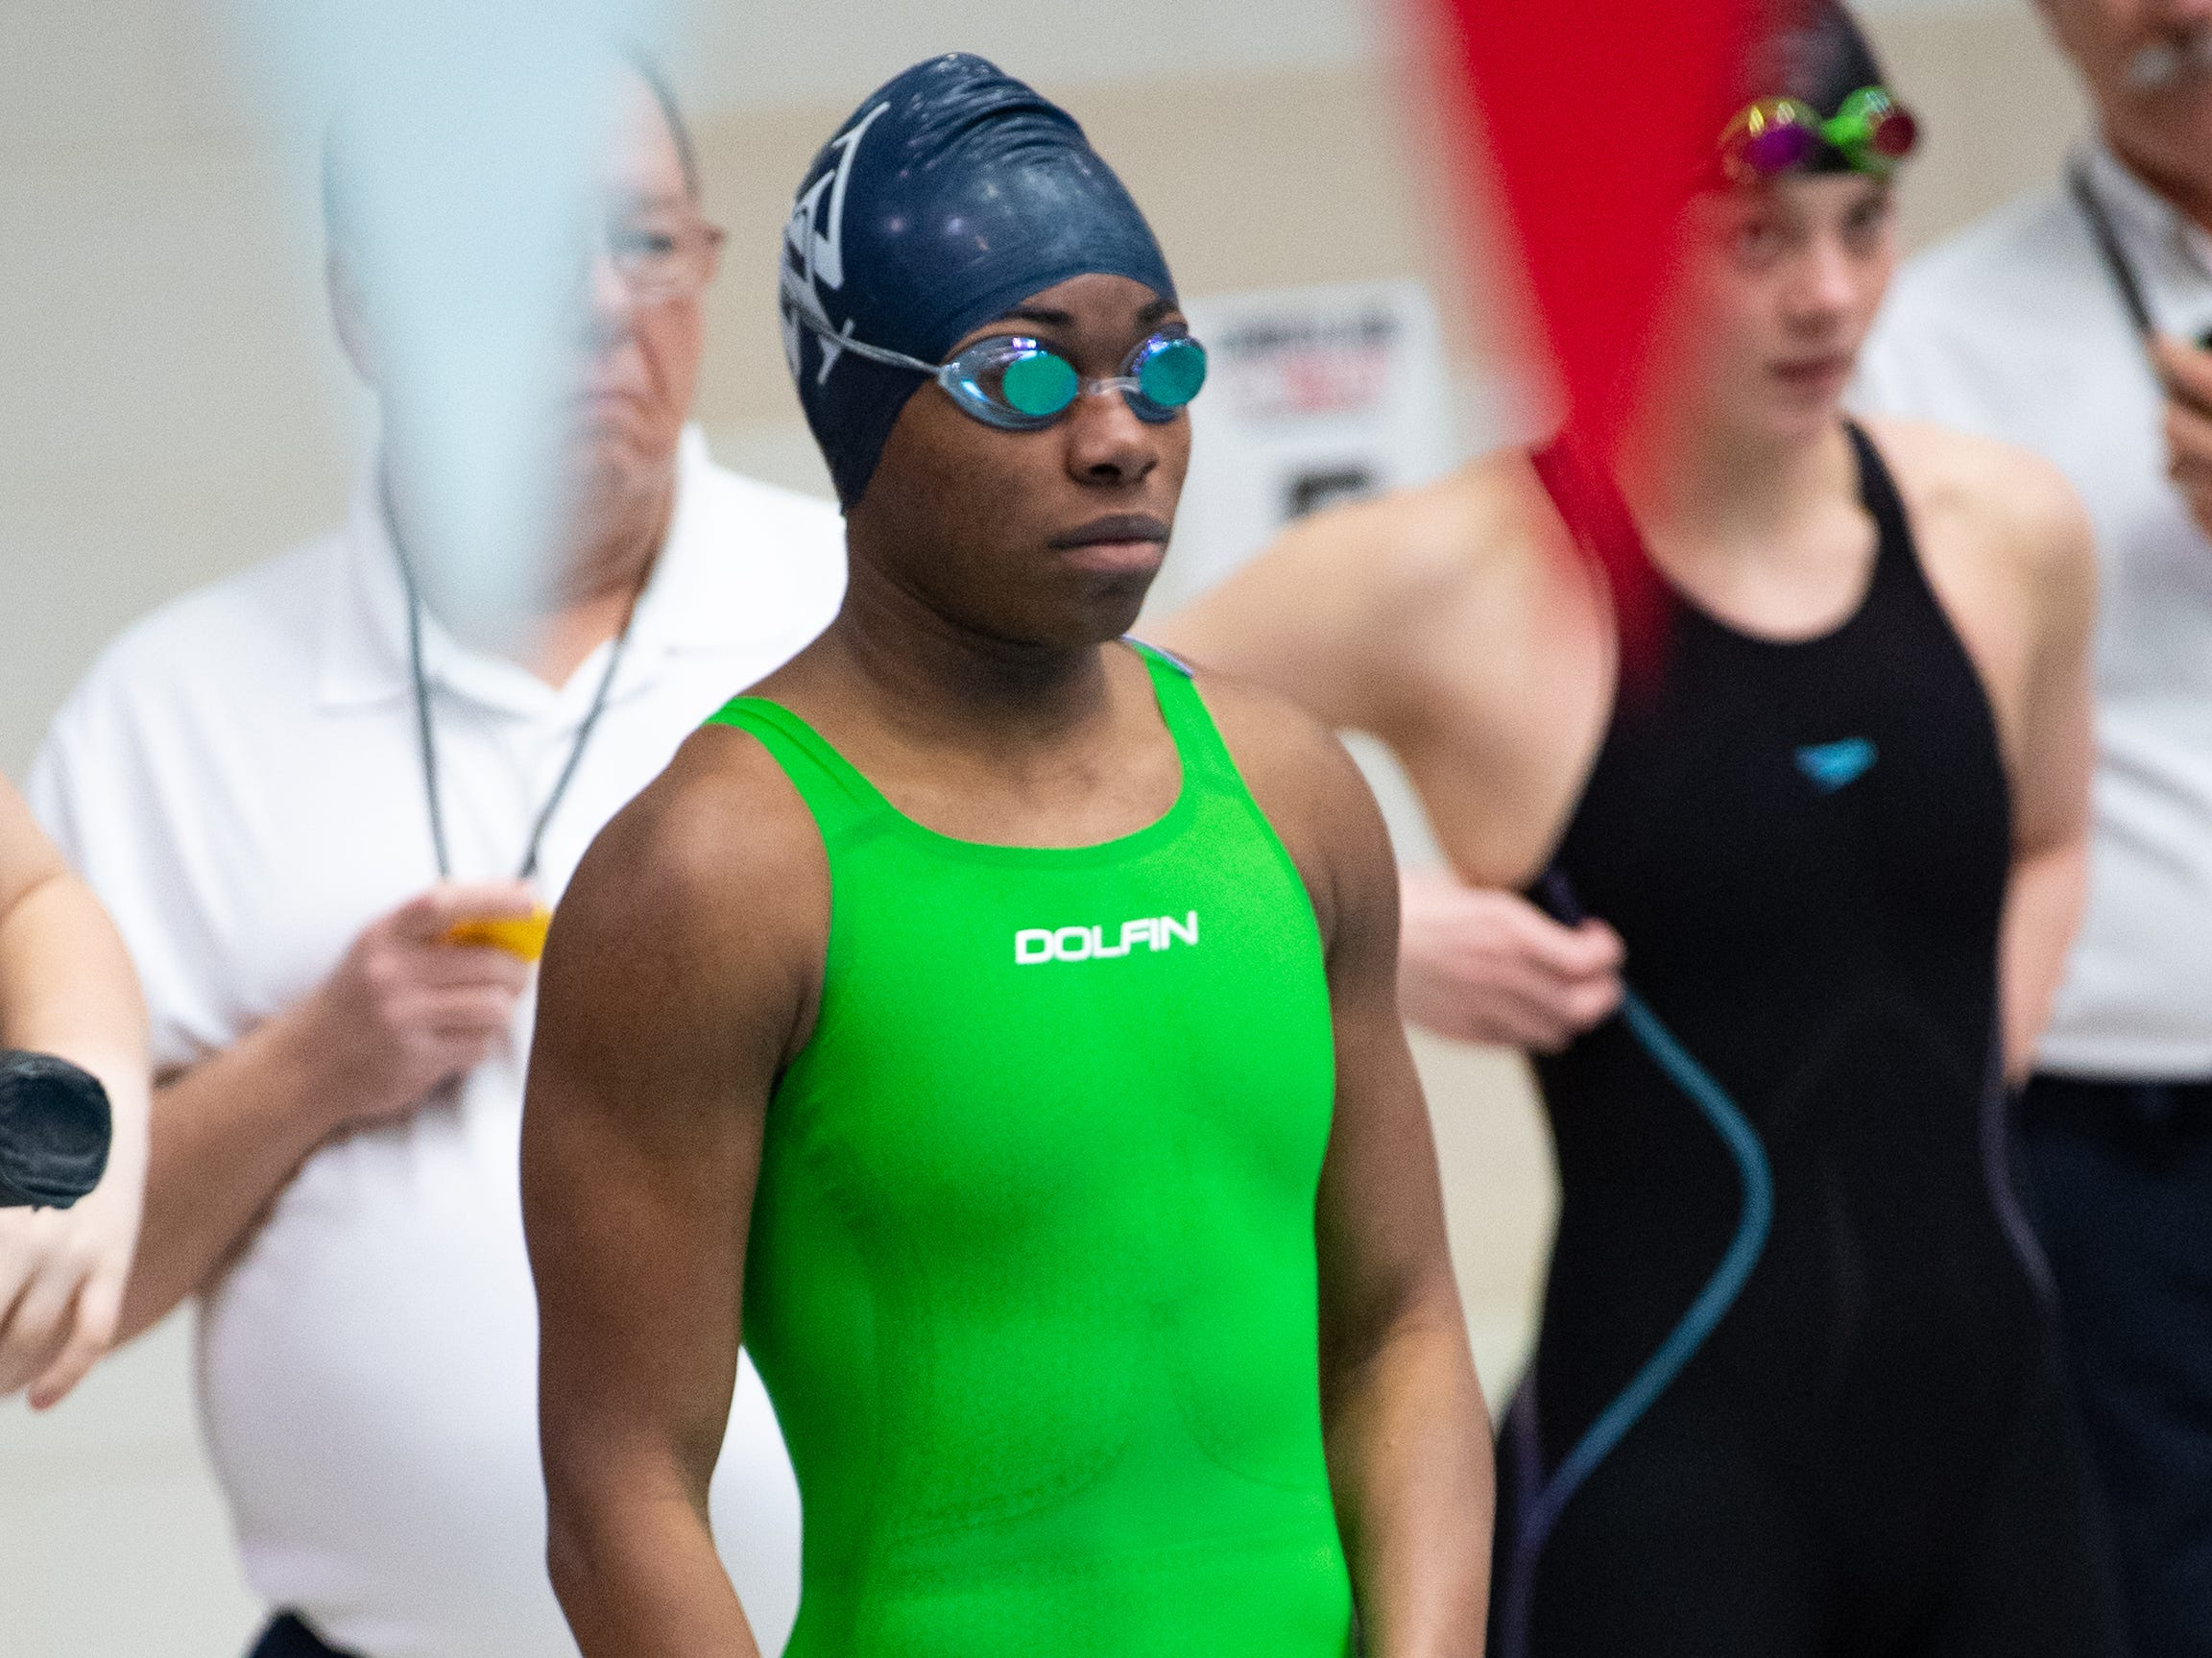 Tesia Thomas of West York prepares to start the Girls 200 Yard Freestyle Relay during the PIAA District 3 Girls AA Championship, March 1, 2019 at Cumberland Valley High School.